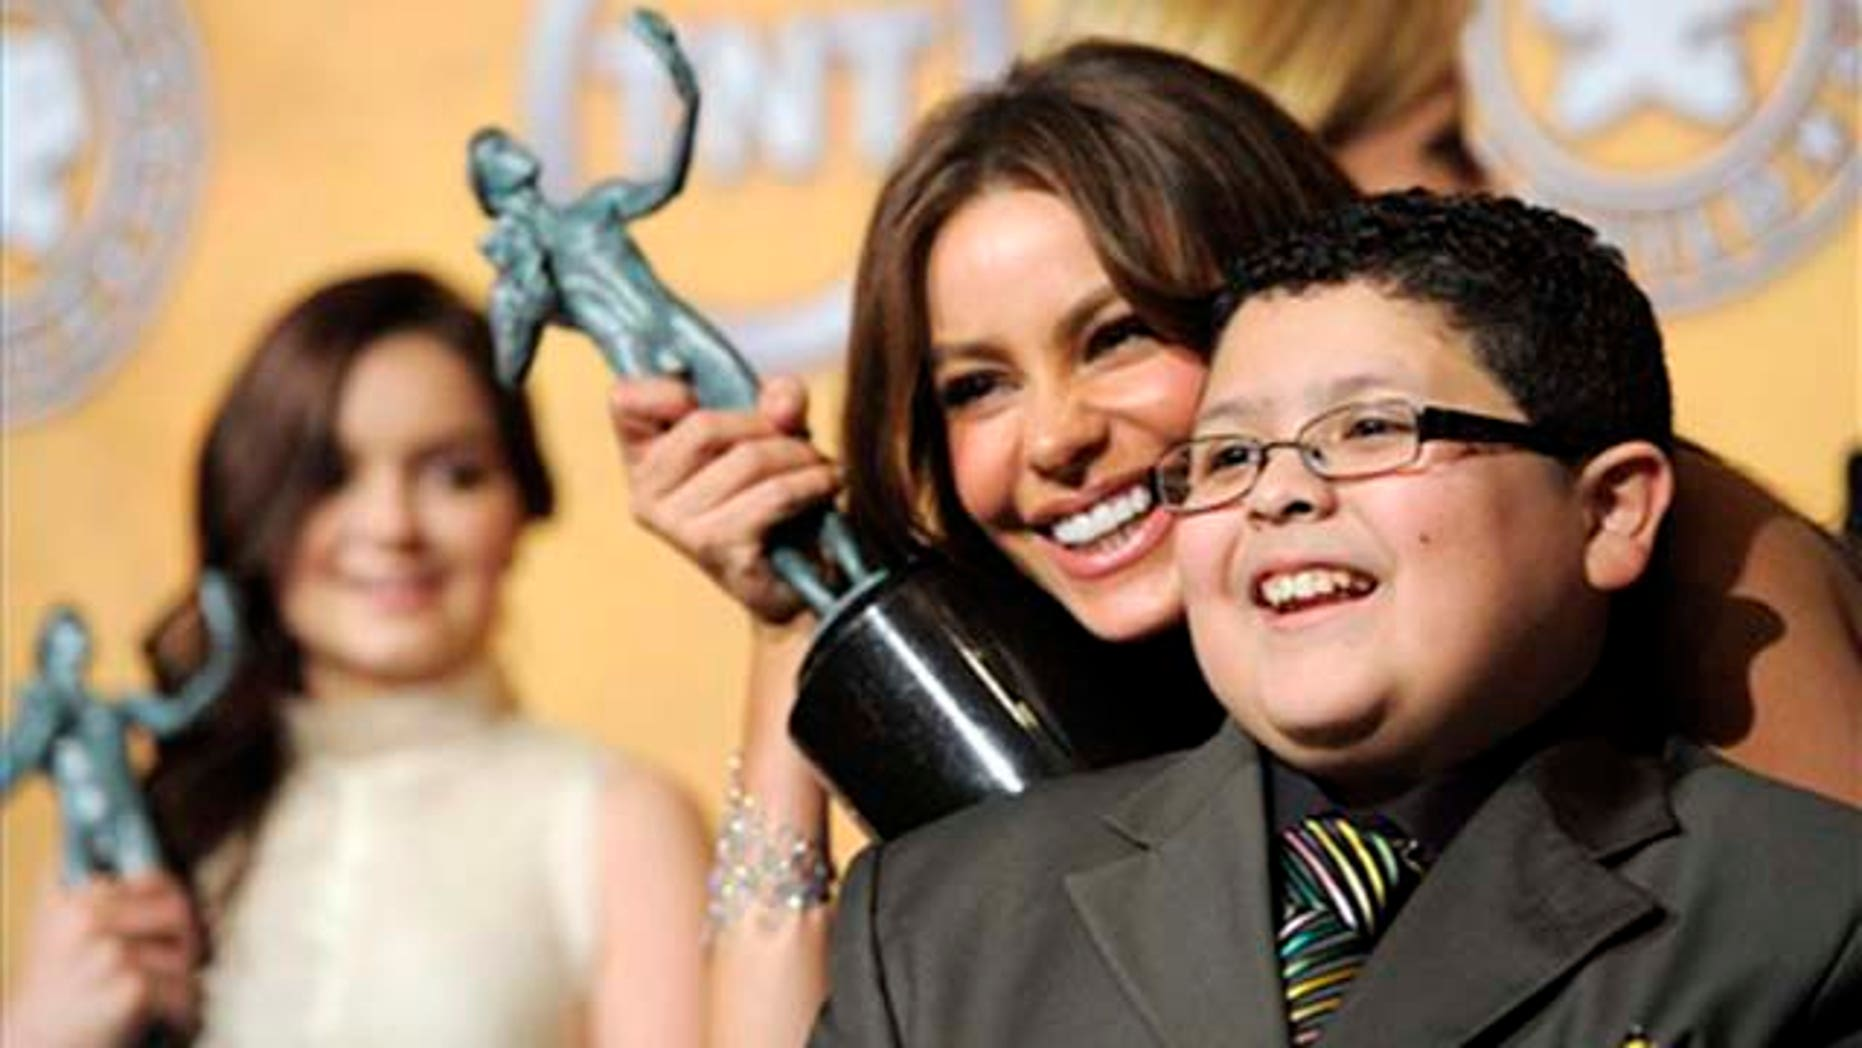 """As Ariel Winter looks on, left, Sofia Vergara and Rico Rodriguez pose together with their best comedy series trophies for """"Modern Family"""" at the 17th Annual Screen Actors Guild Awards on Sunday, Jan. 30, 2011 in Los Angeles. (AP Photo/Chris Pizzello)"""